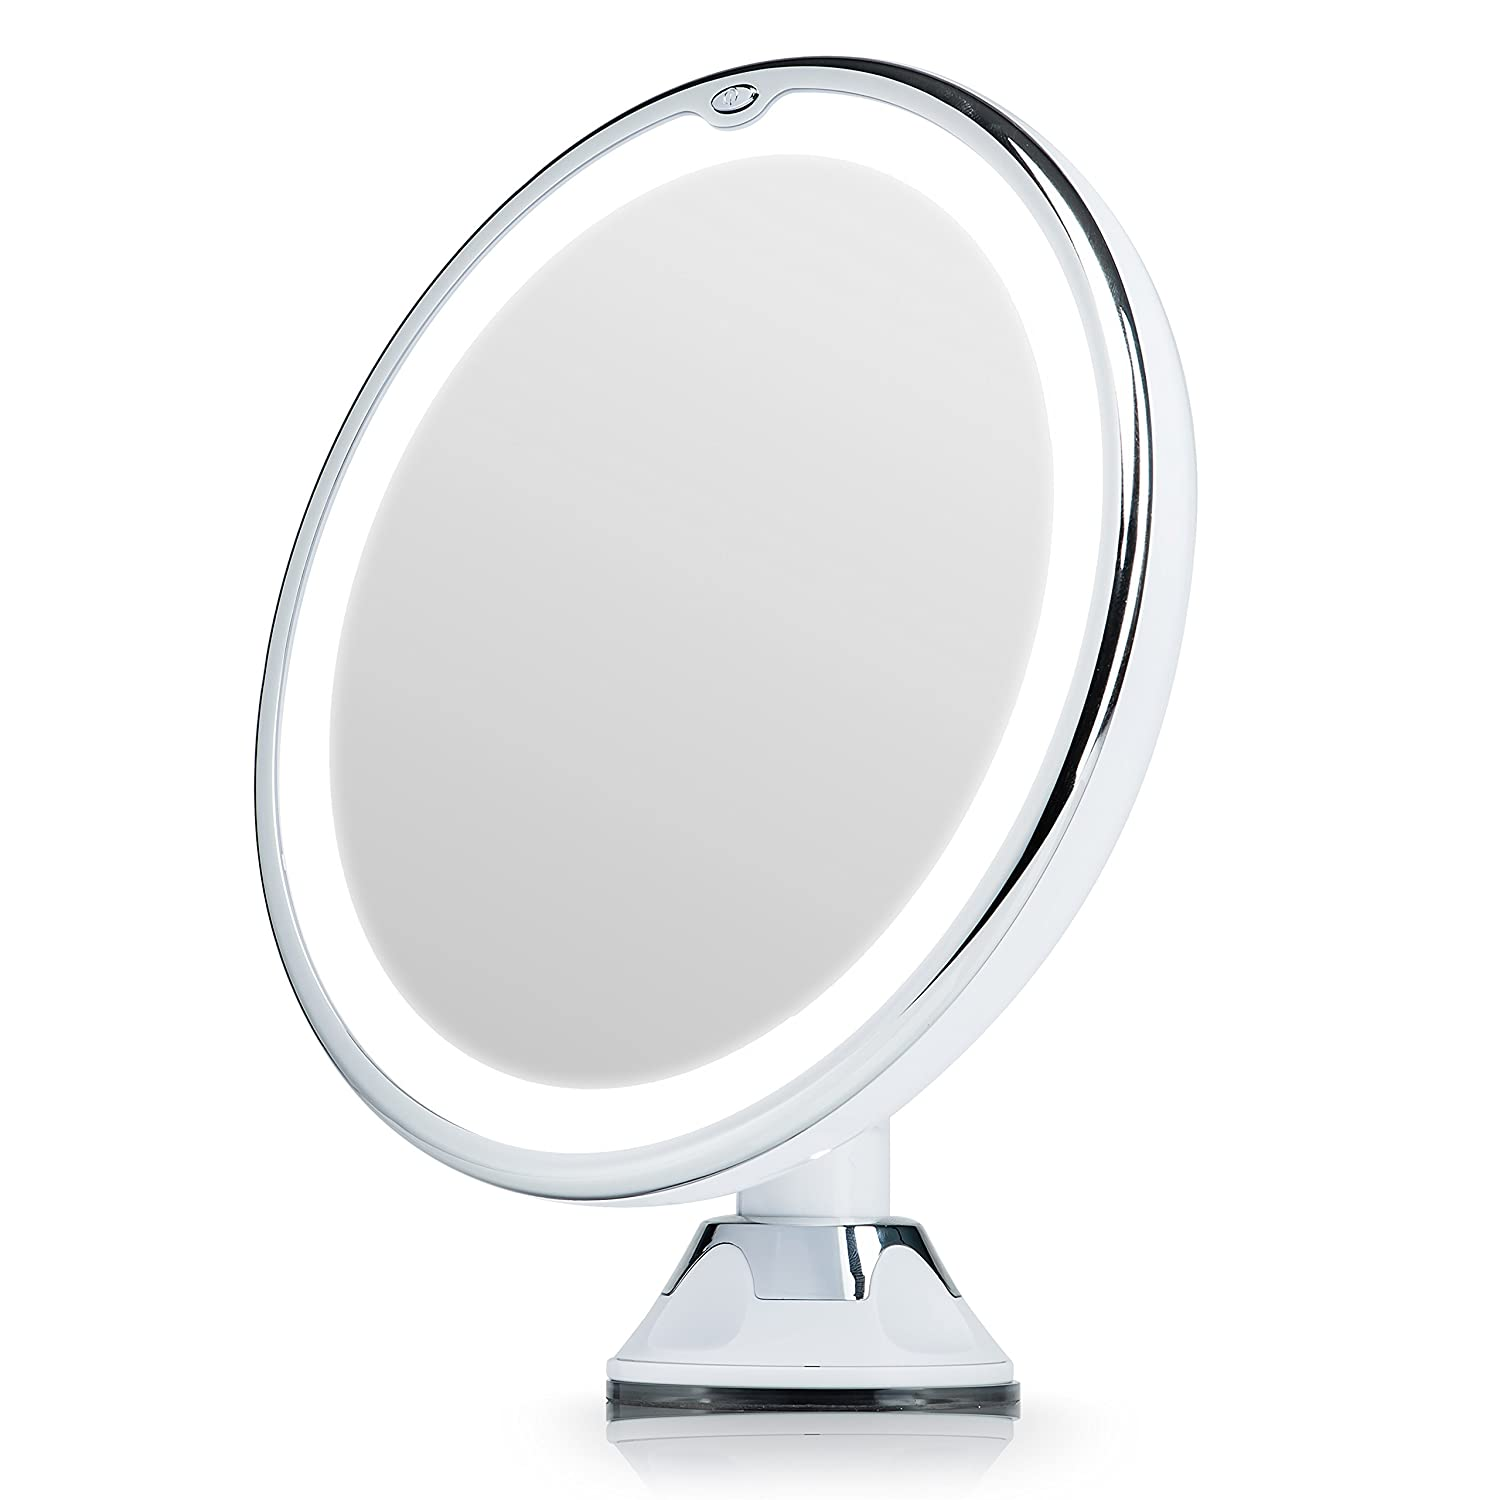 Fancii Lighted Magnifying Makeup Mirror 7X with Natural LED Lights, Locking Suction Cup, Cordless Portable Illuminated Vanity Mirror for Bathroom and Travel